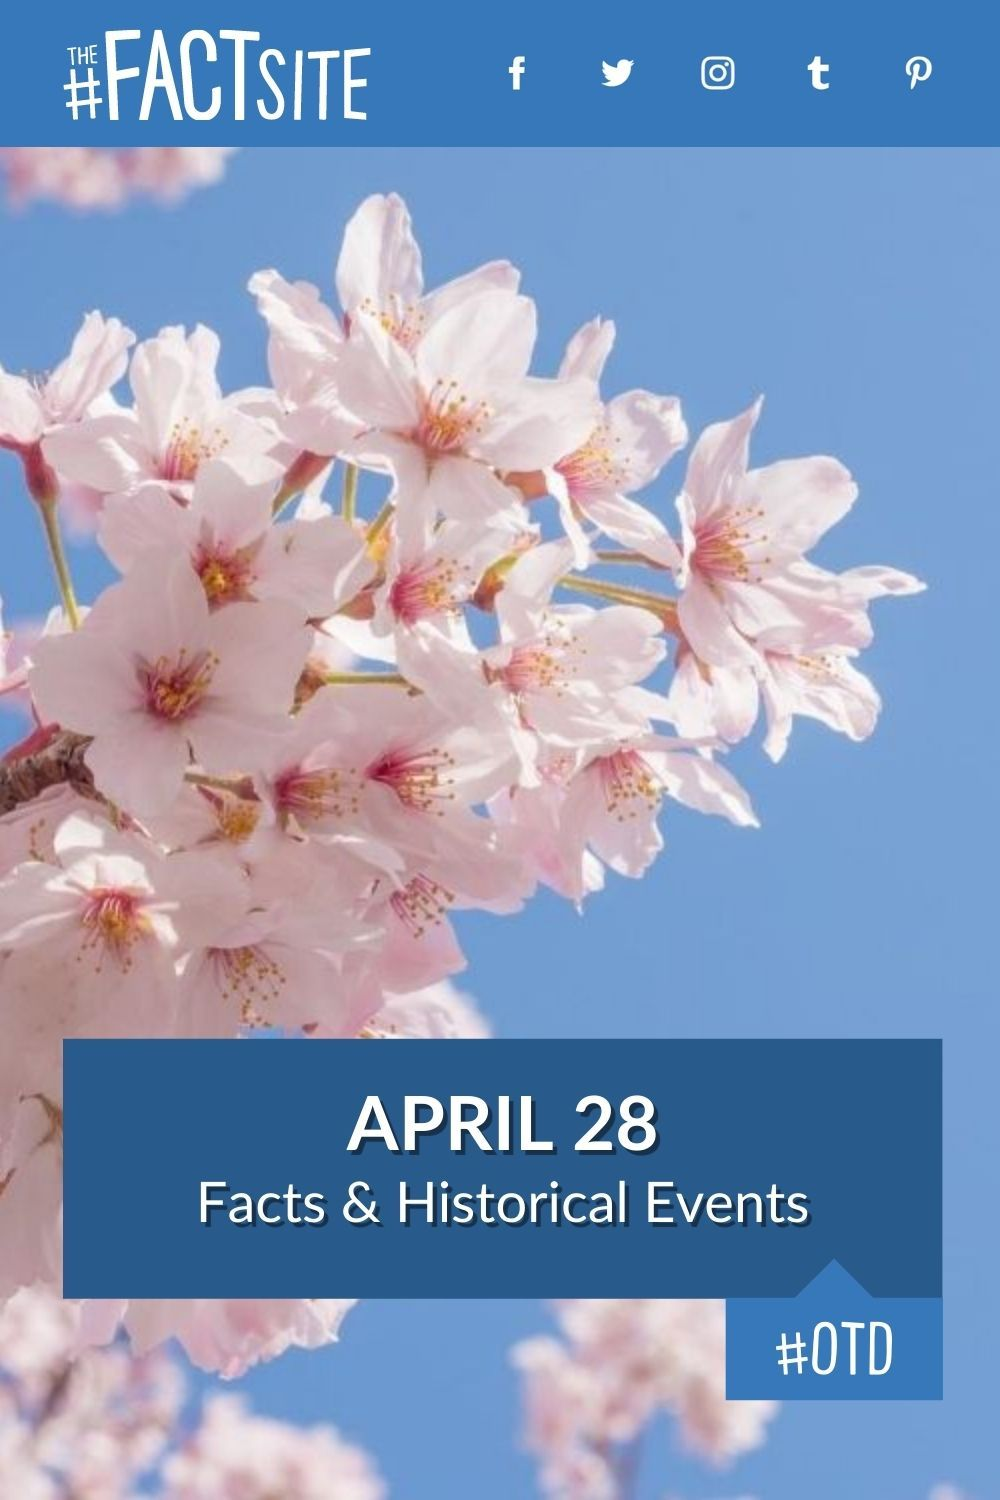 Facts & Historic Events That Happened on April 28